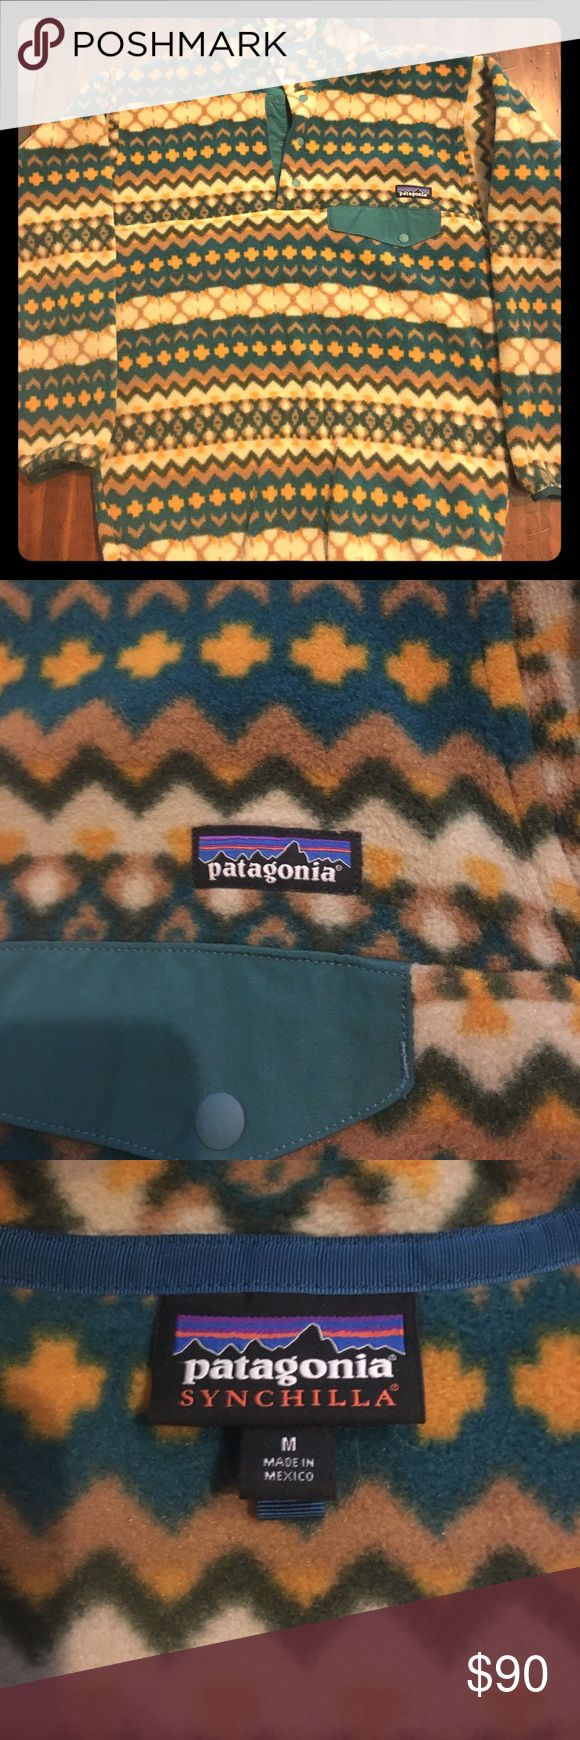 Men's Patagonia Synchilla For sale is a Men's Medium Patagonia Synchilla. It is in excellent condition, hardly worn. Patagonia Sweaters